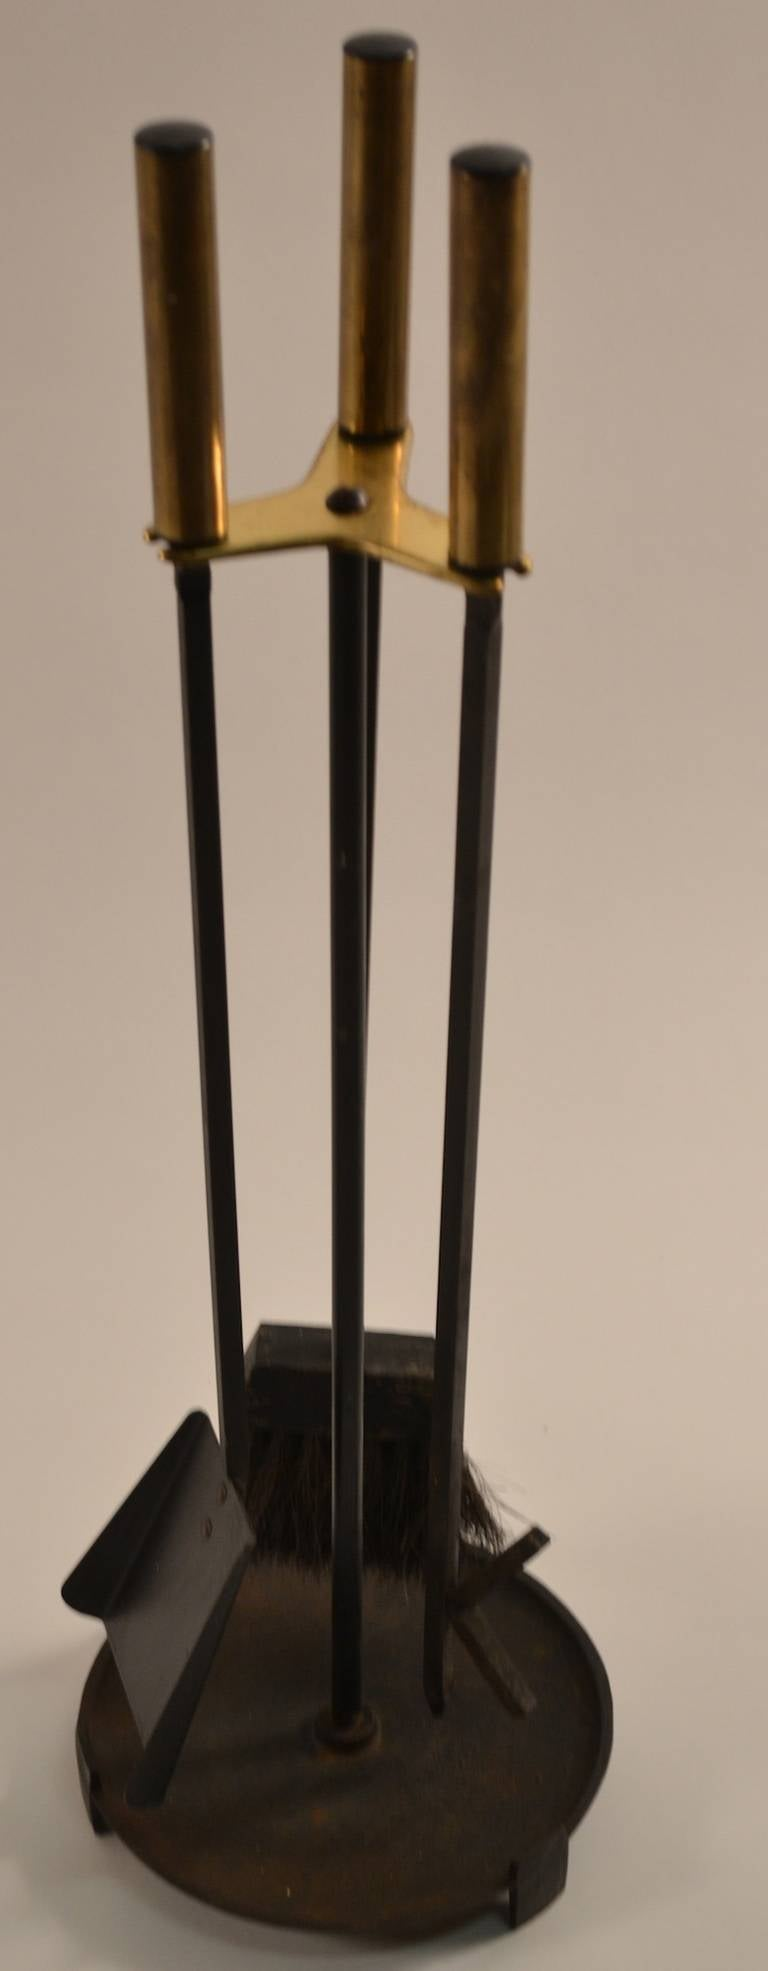 Modernist Fireplace Tool Set at 1stdibs